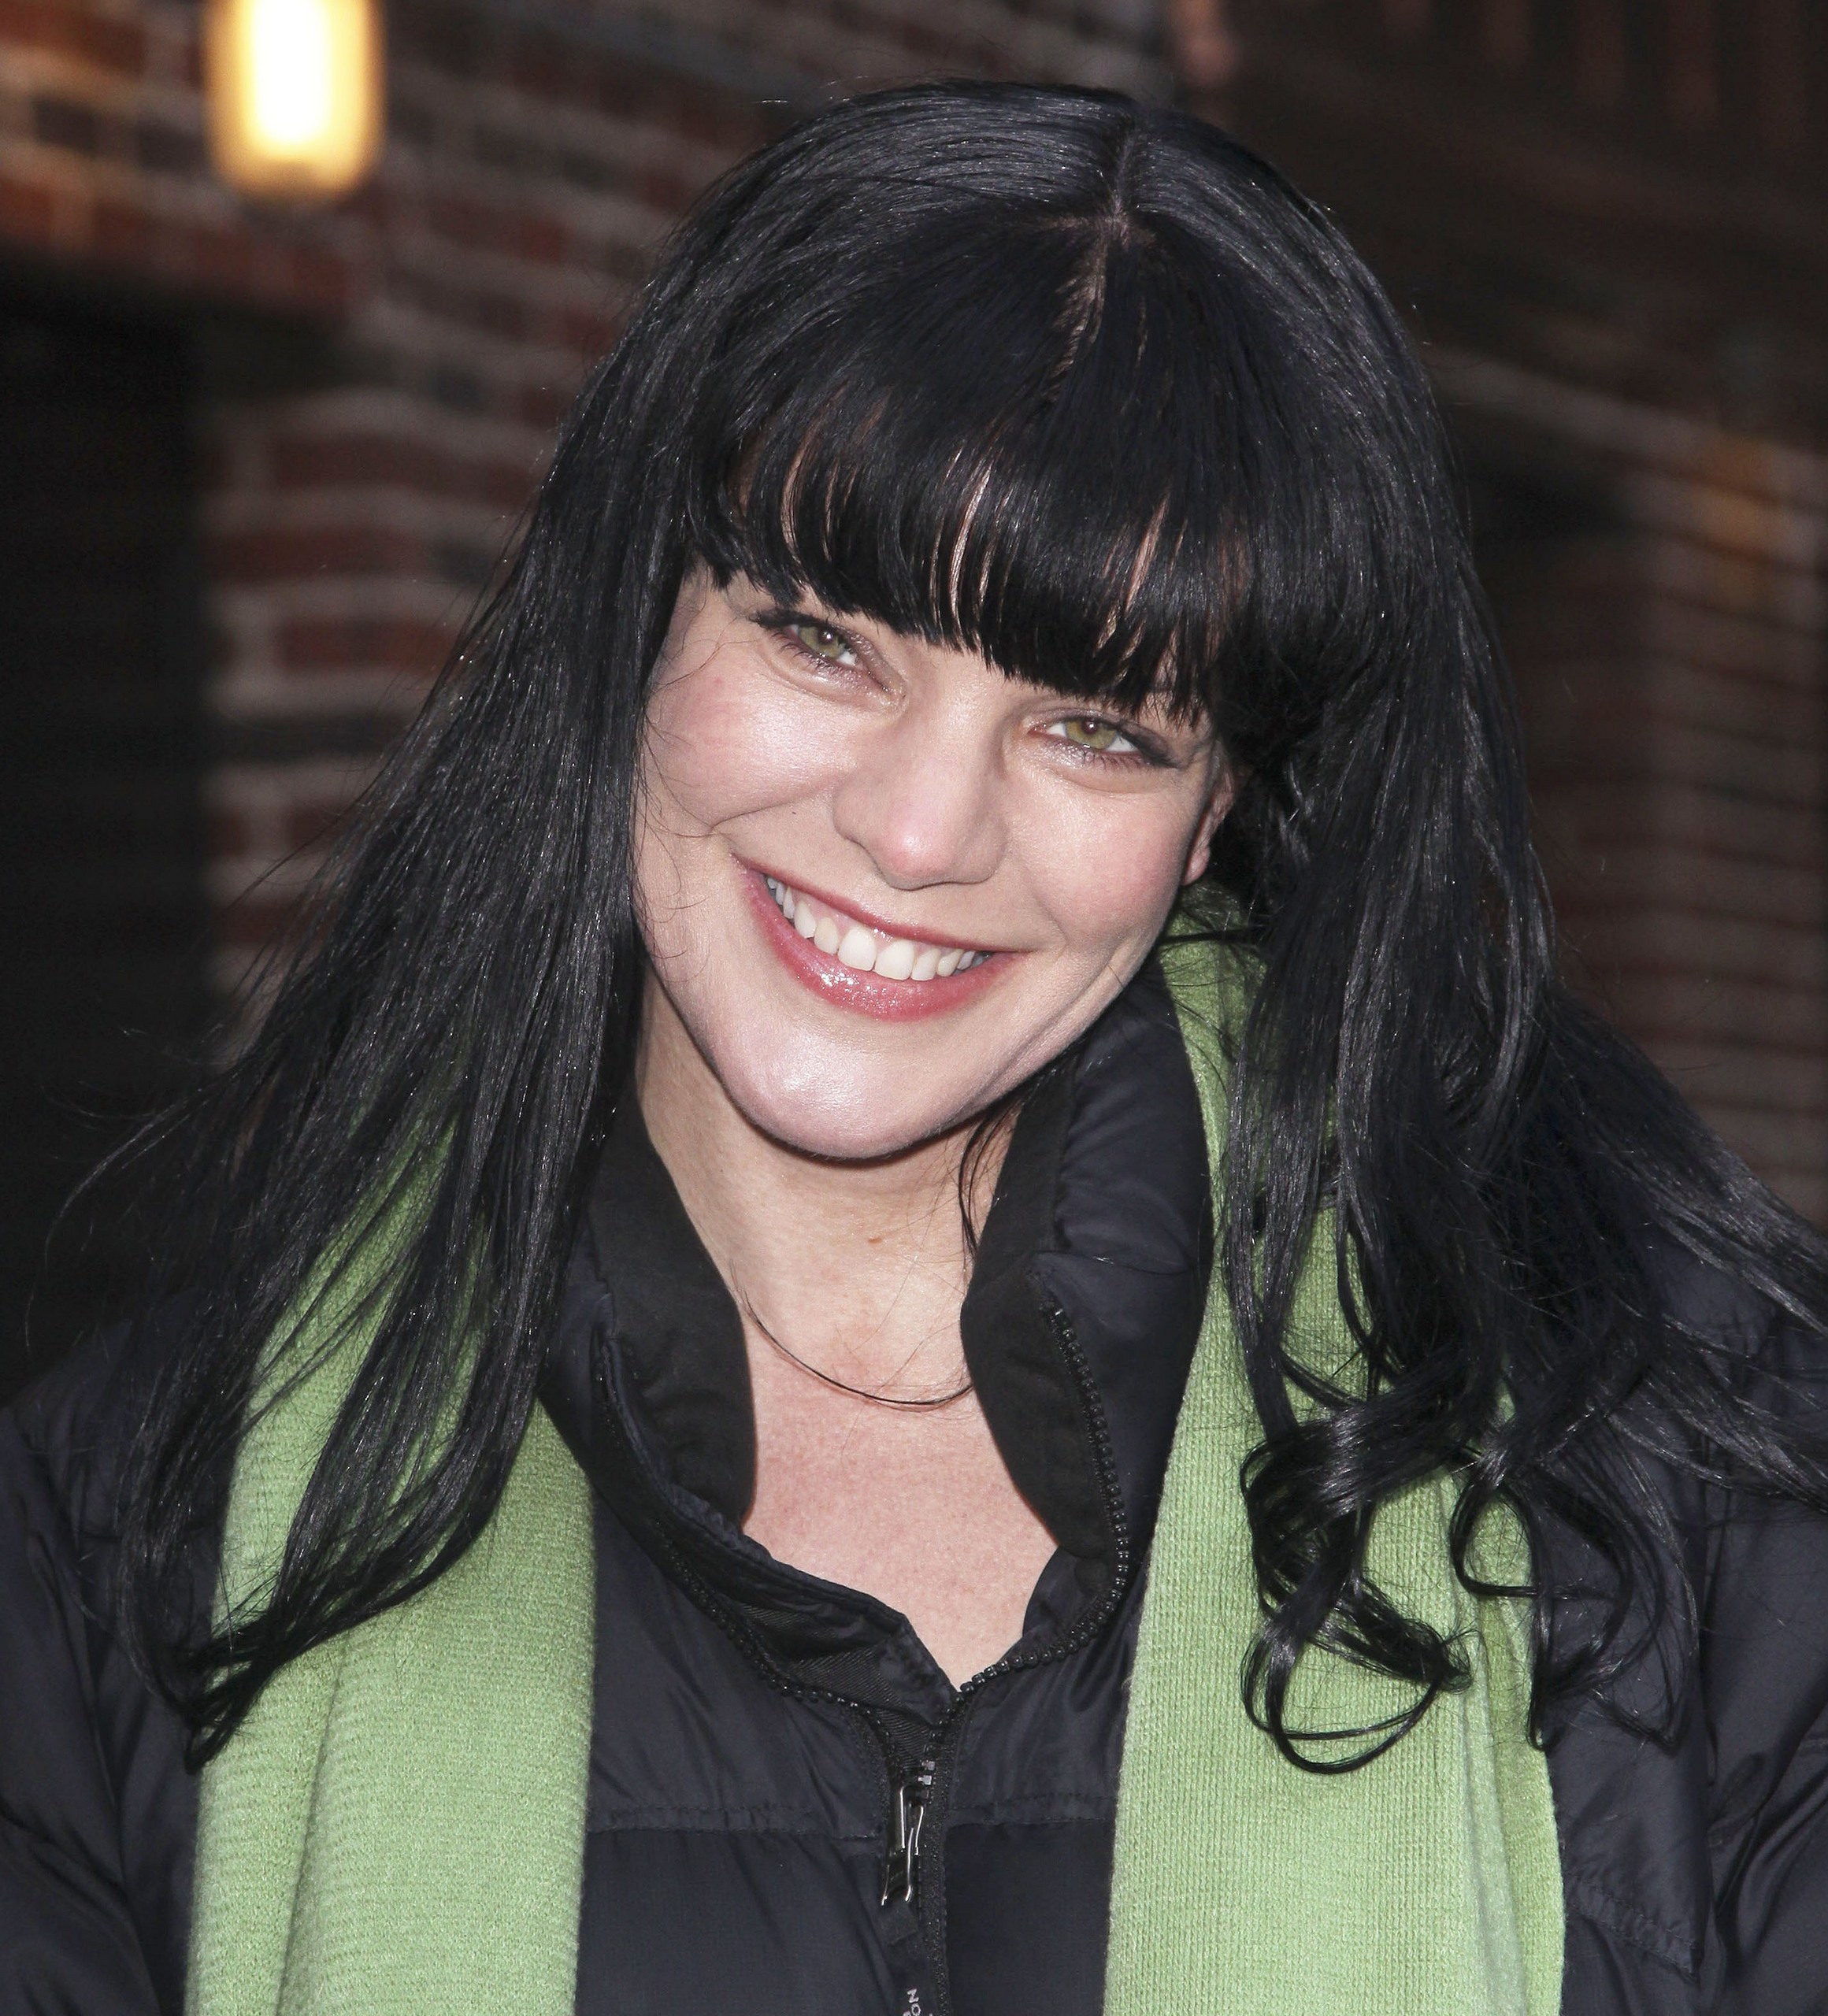 Pauley Perrette - Outside The late tunjuk with David Letterman